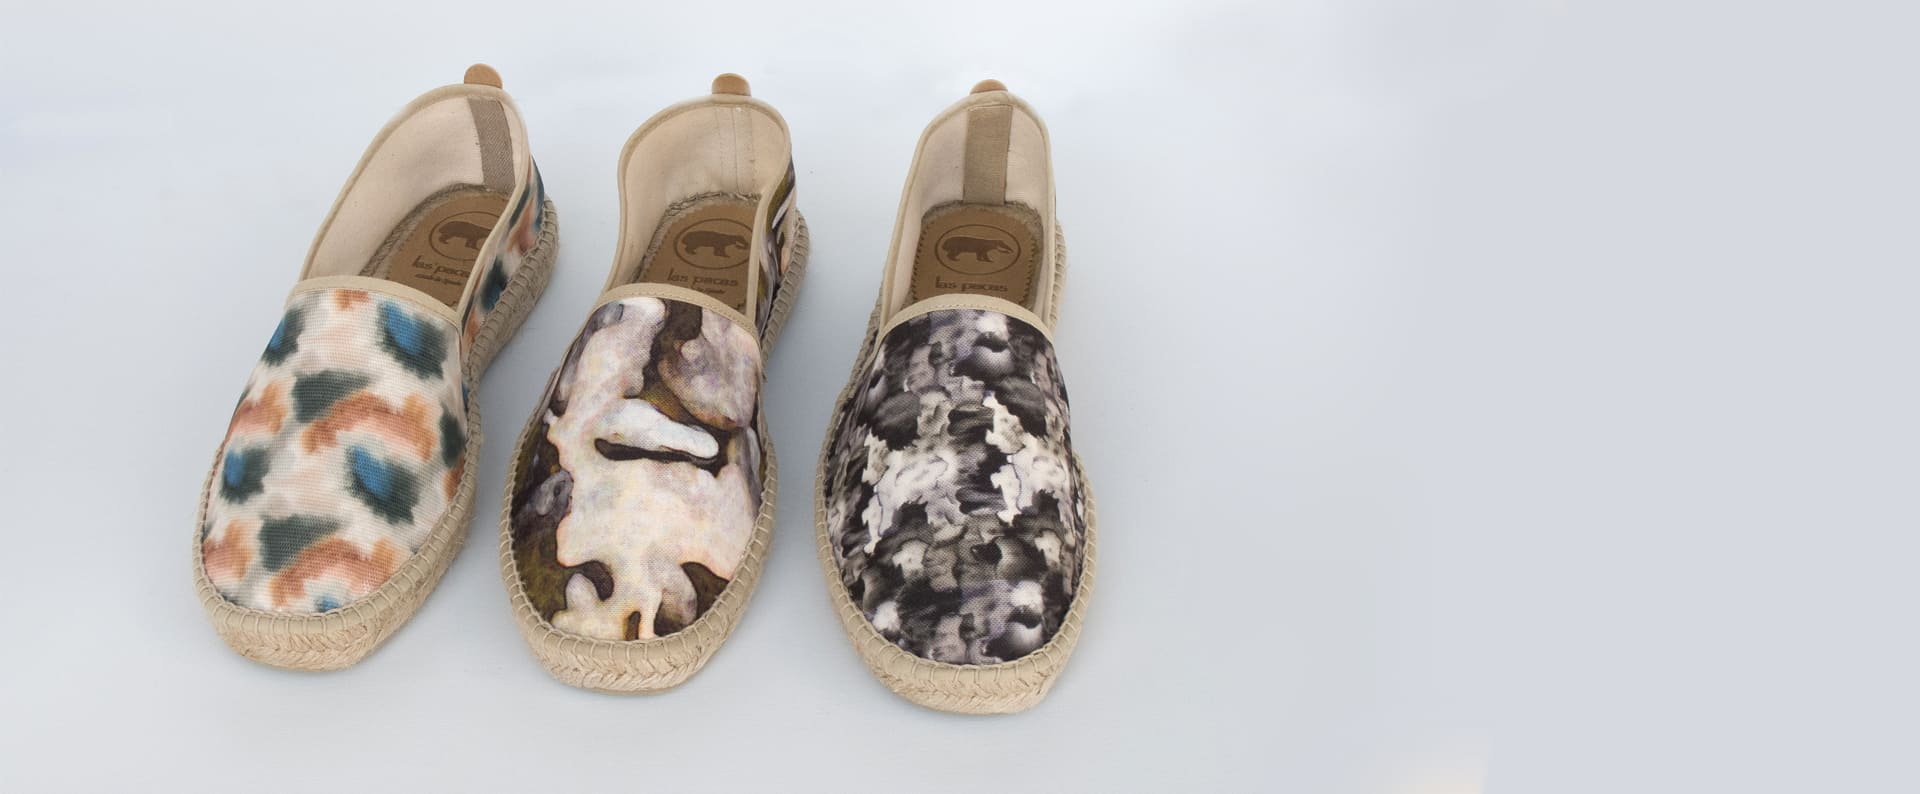 recycled espadrilles for men